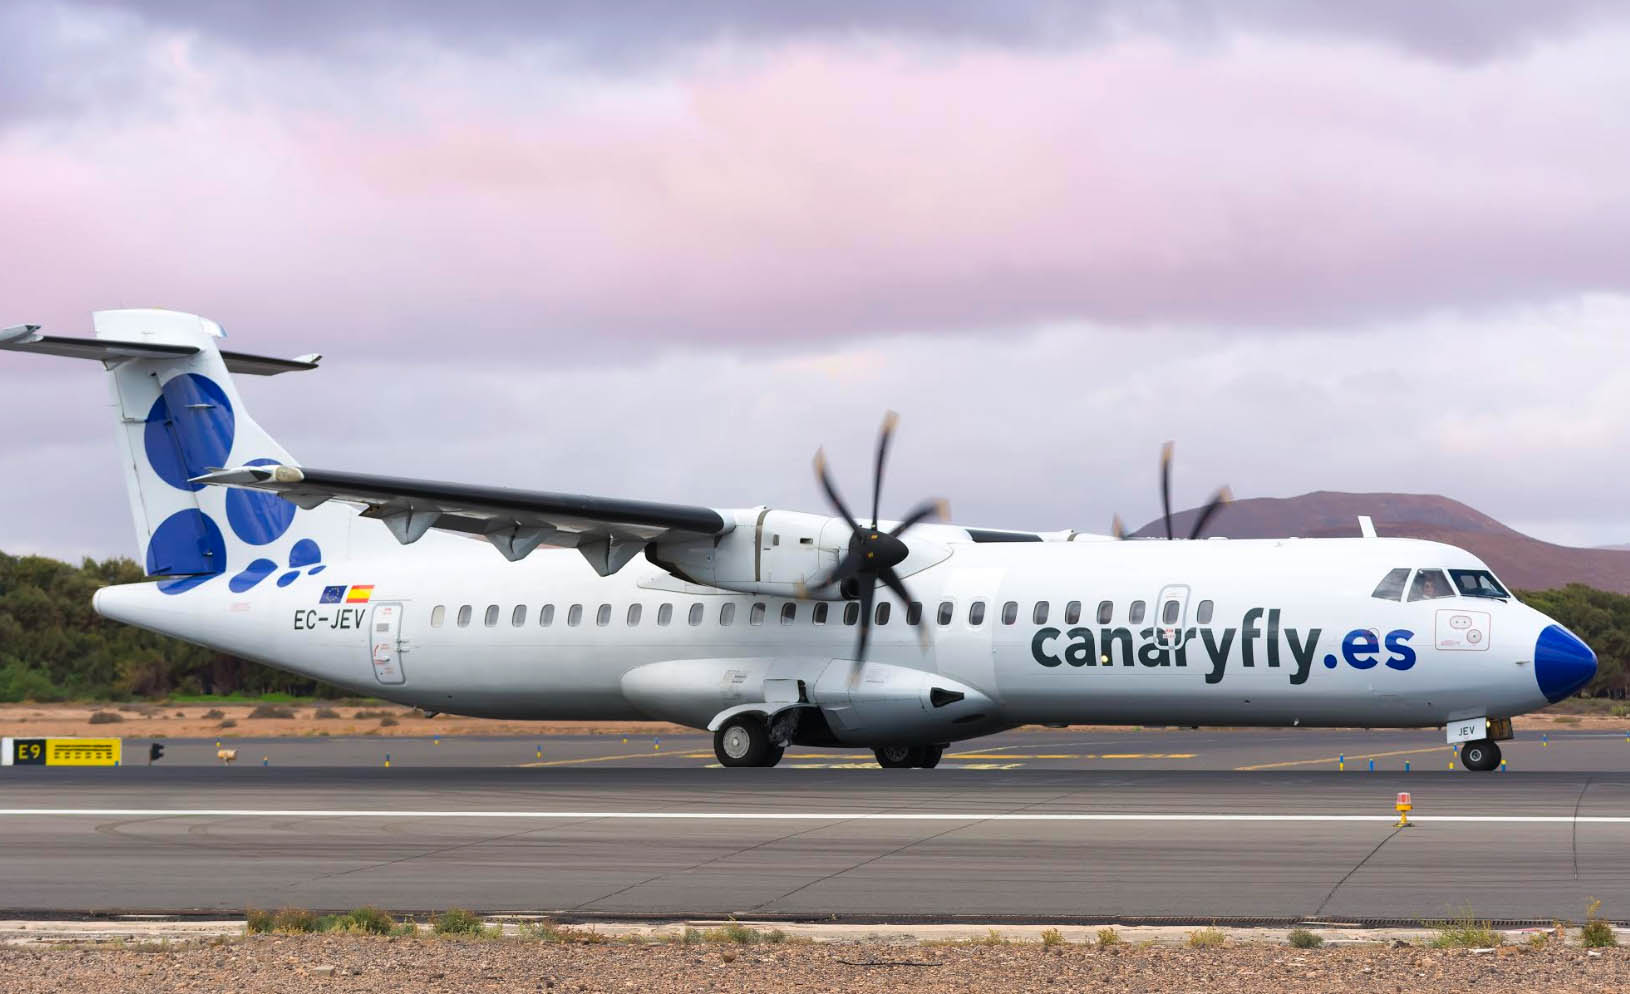 Canaryfly announces suspension of flights until March